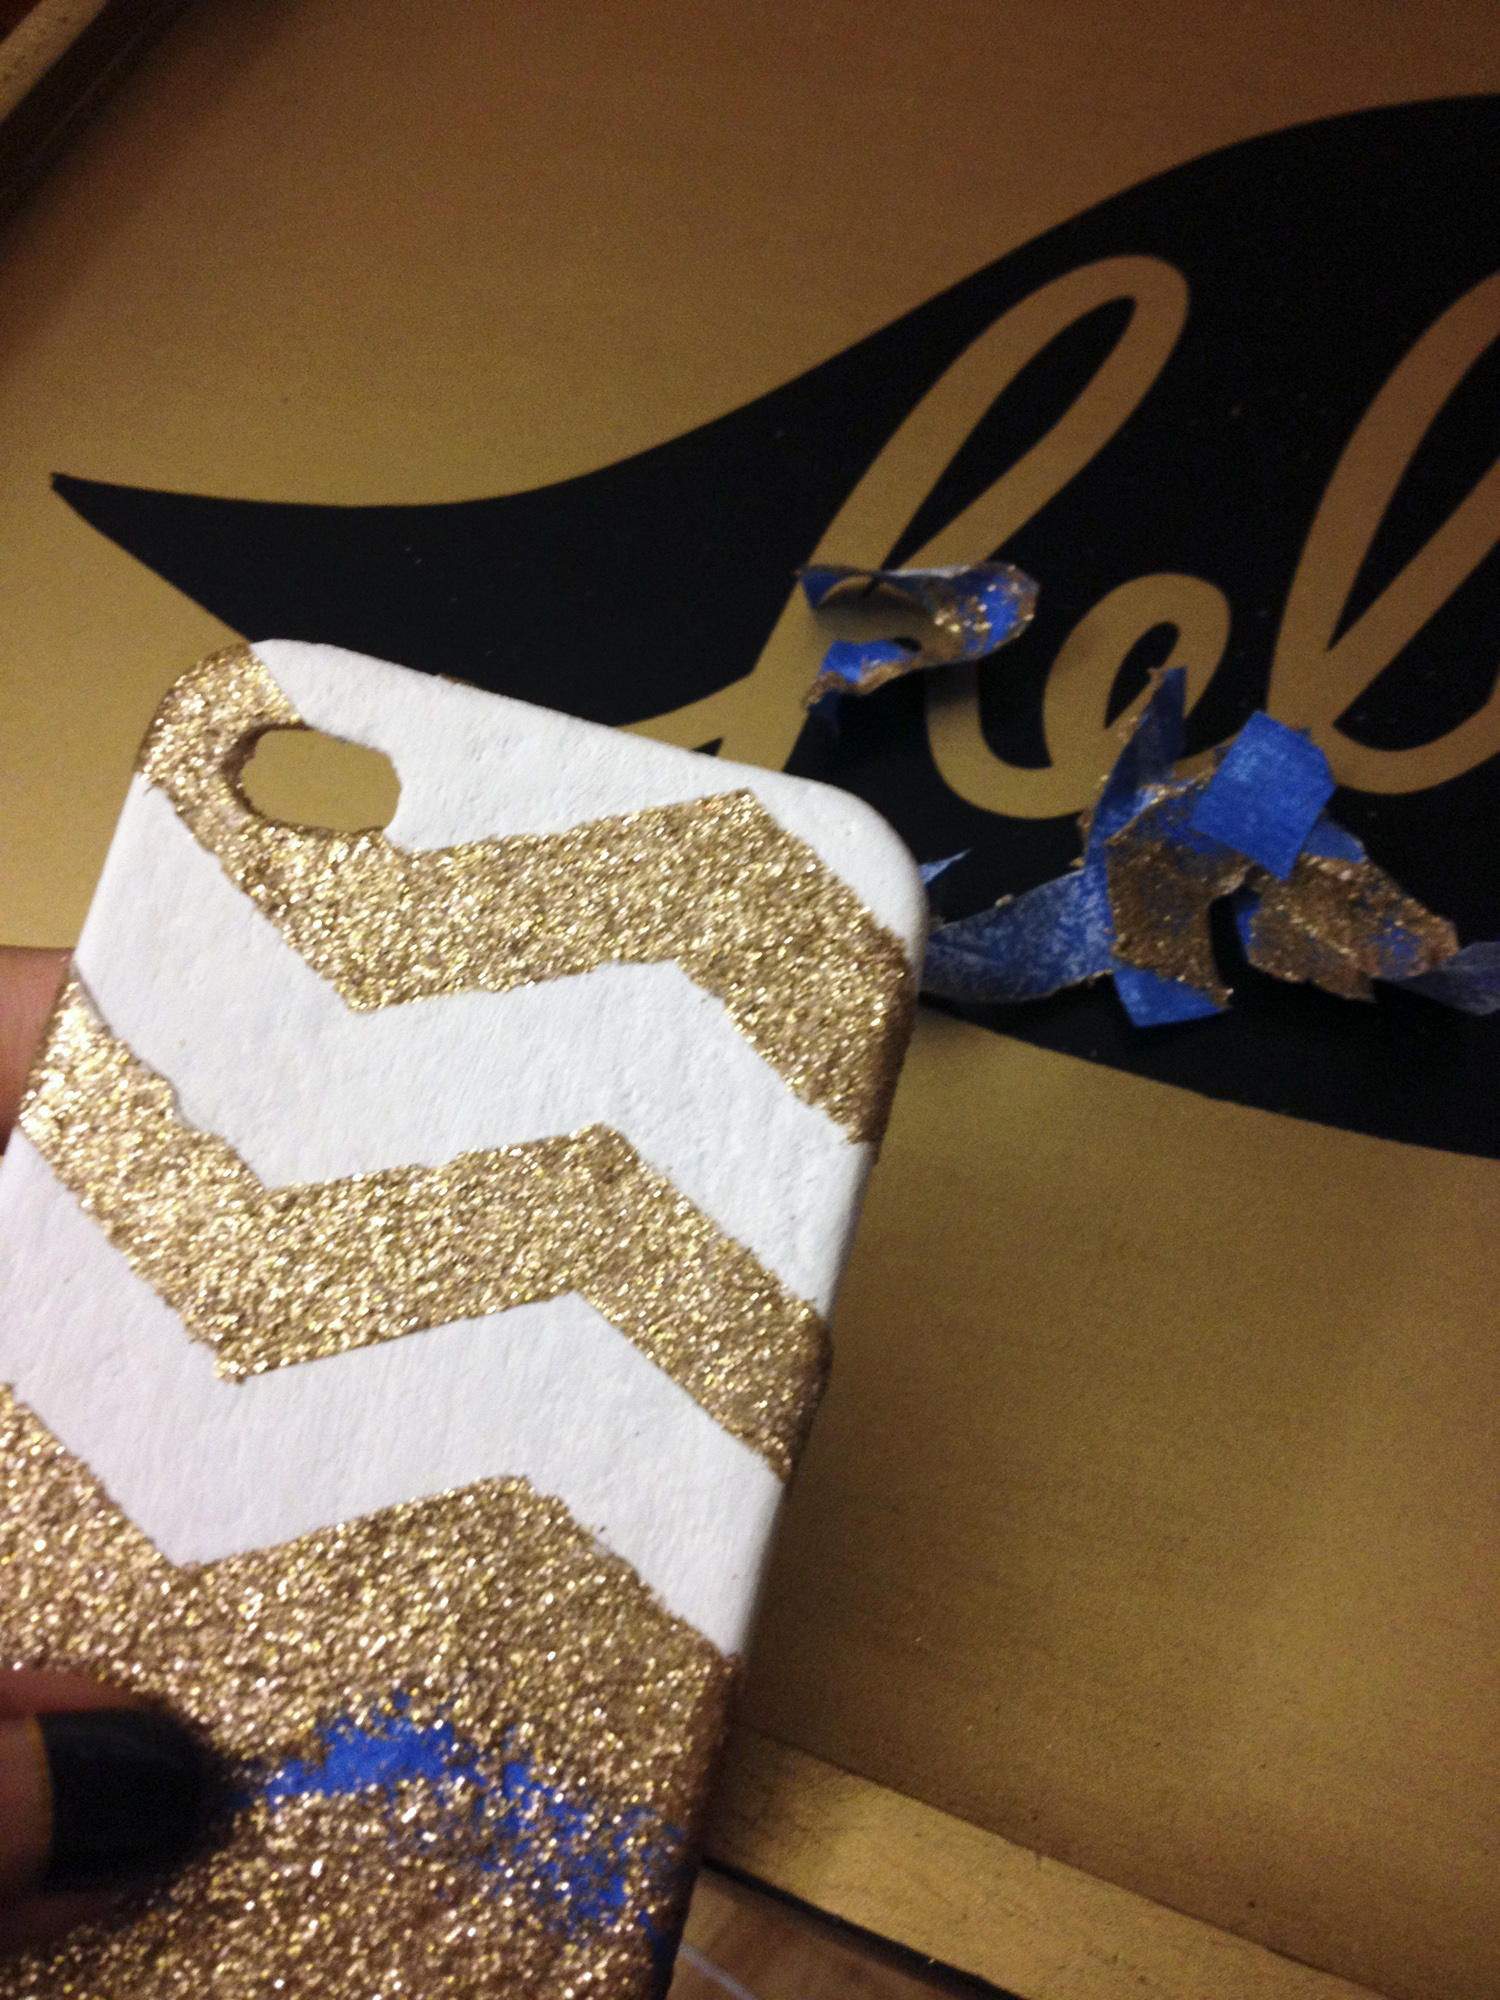 phone case makeover - peel off tape to reveal chevron pattern in glitter